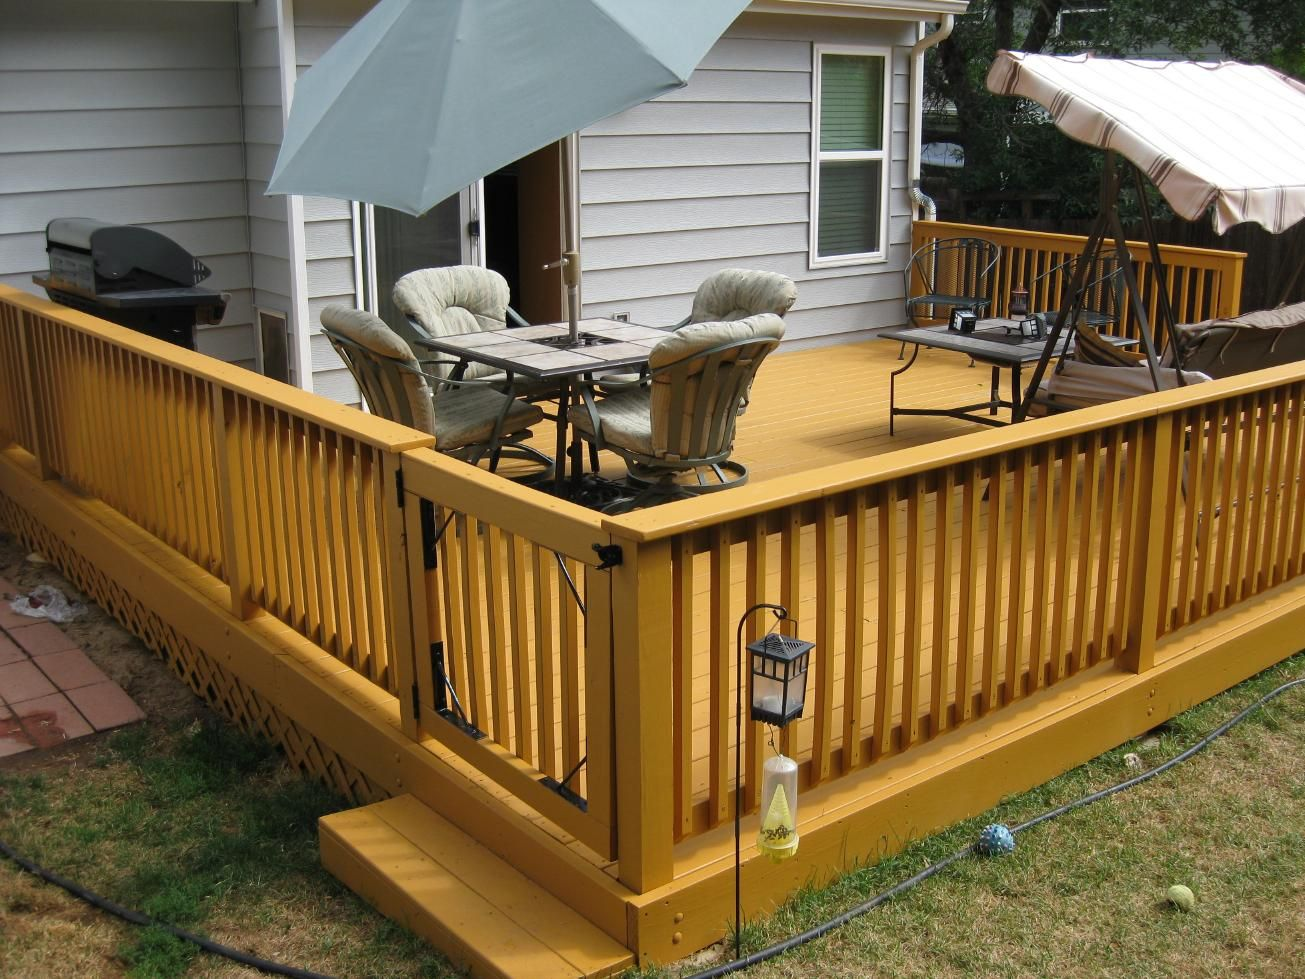 small deck designs plans ideas for deck design multi space deck 96bc39f18e5303e2d2b0e35d4cdc2d0f ideas for deck designshtml - Ideas For Deck Design